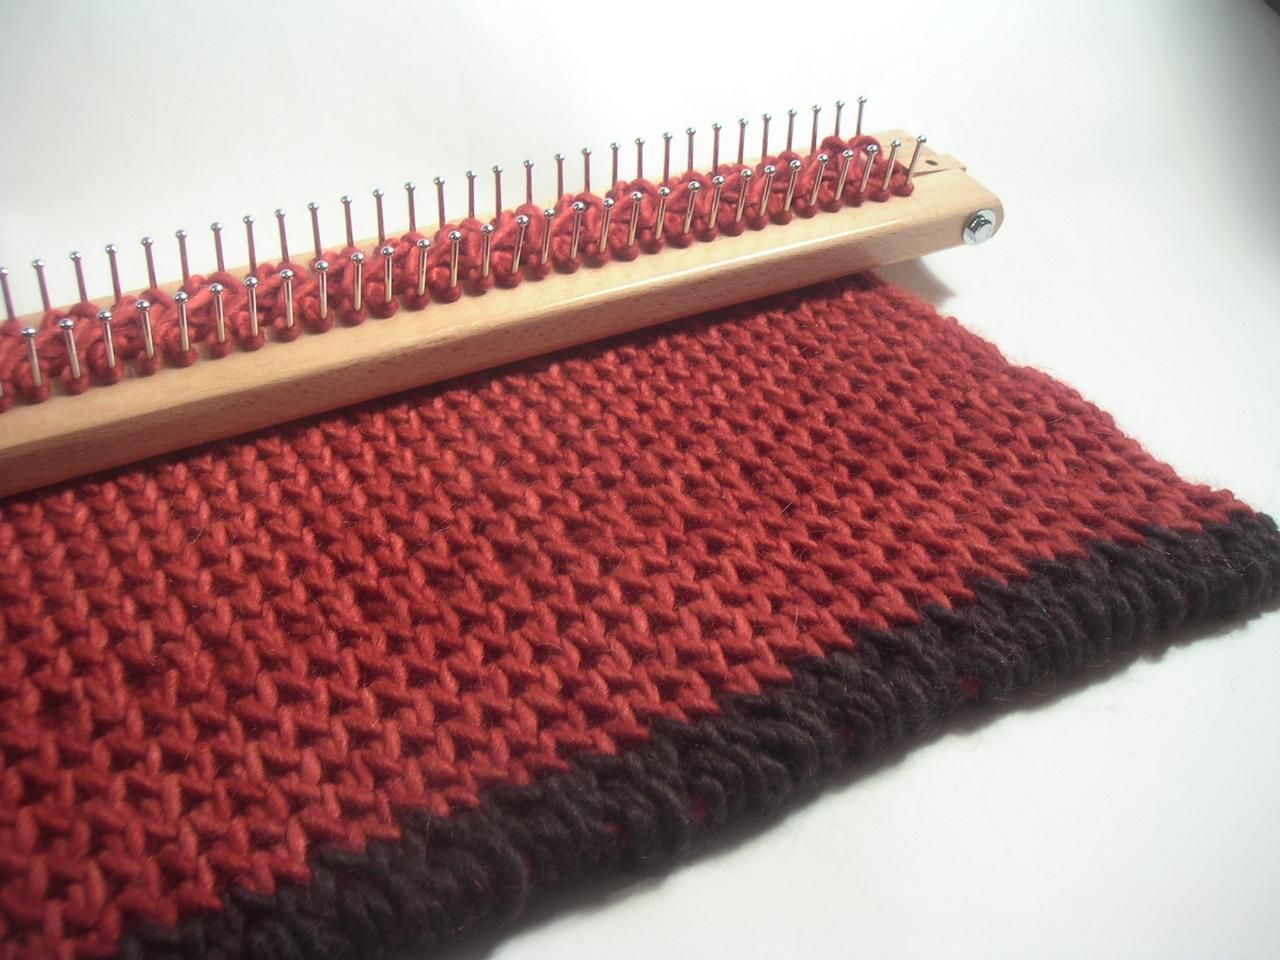 Knitting Loom Ideas : Free knitting board patterns with the new heavy duty